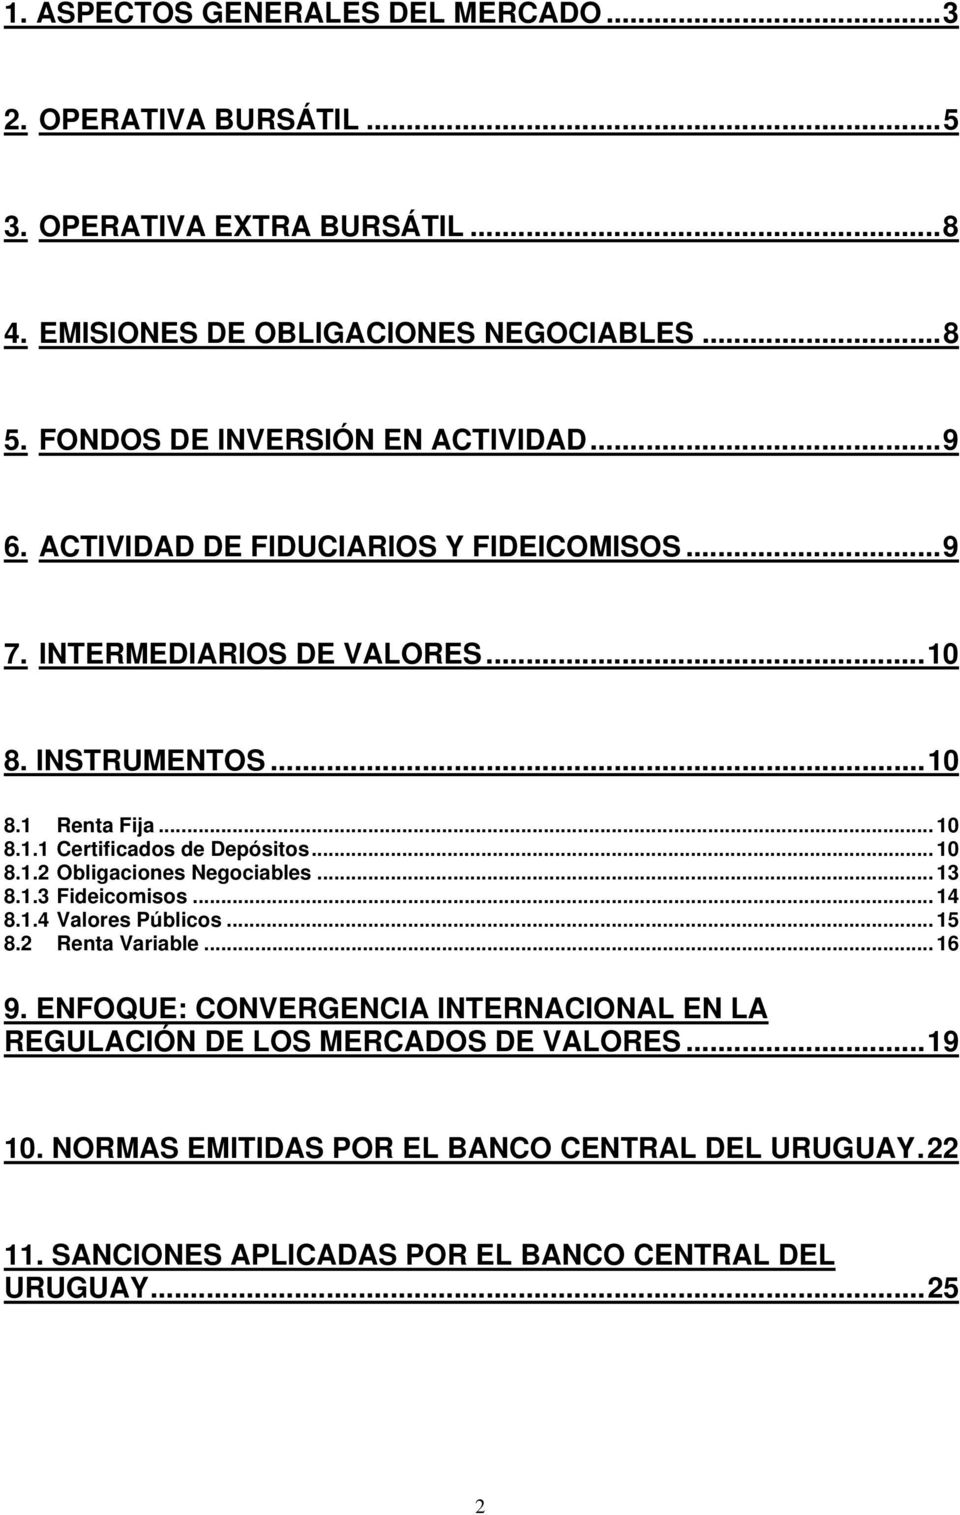 .. 10 8.1.2 Obligaciones Negociables... 13 8.1.3 Fideicomisos... 14 8.1.4 Valores Públicos... 15 8.2 Renta Variable... 16 9.